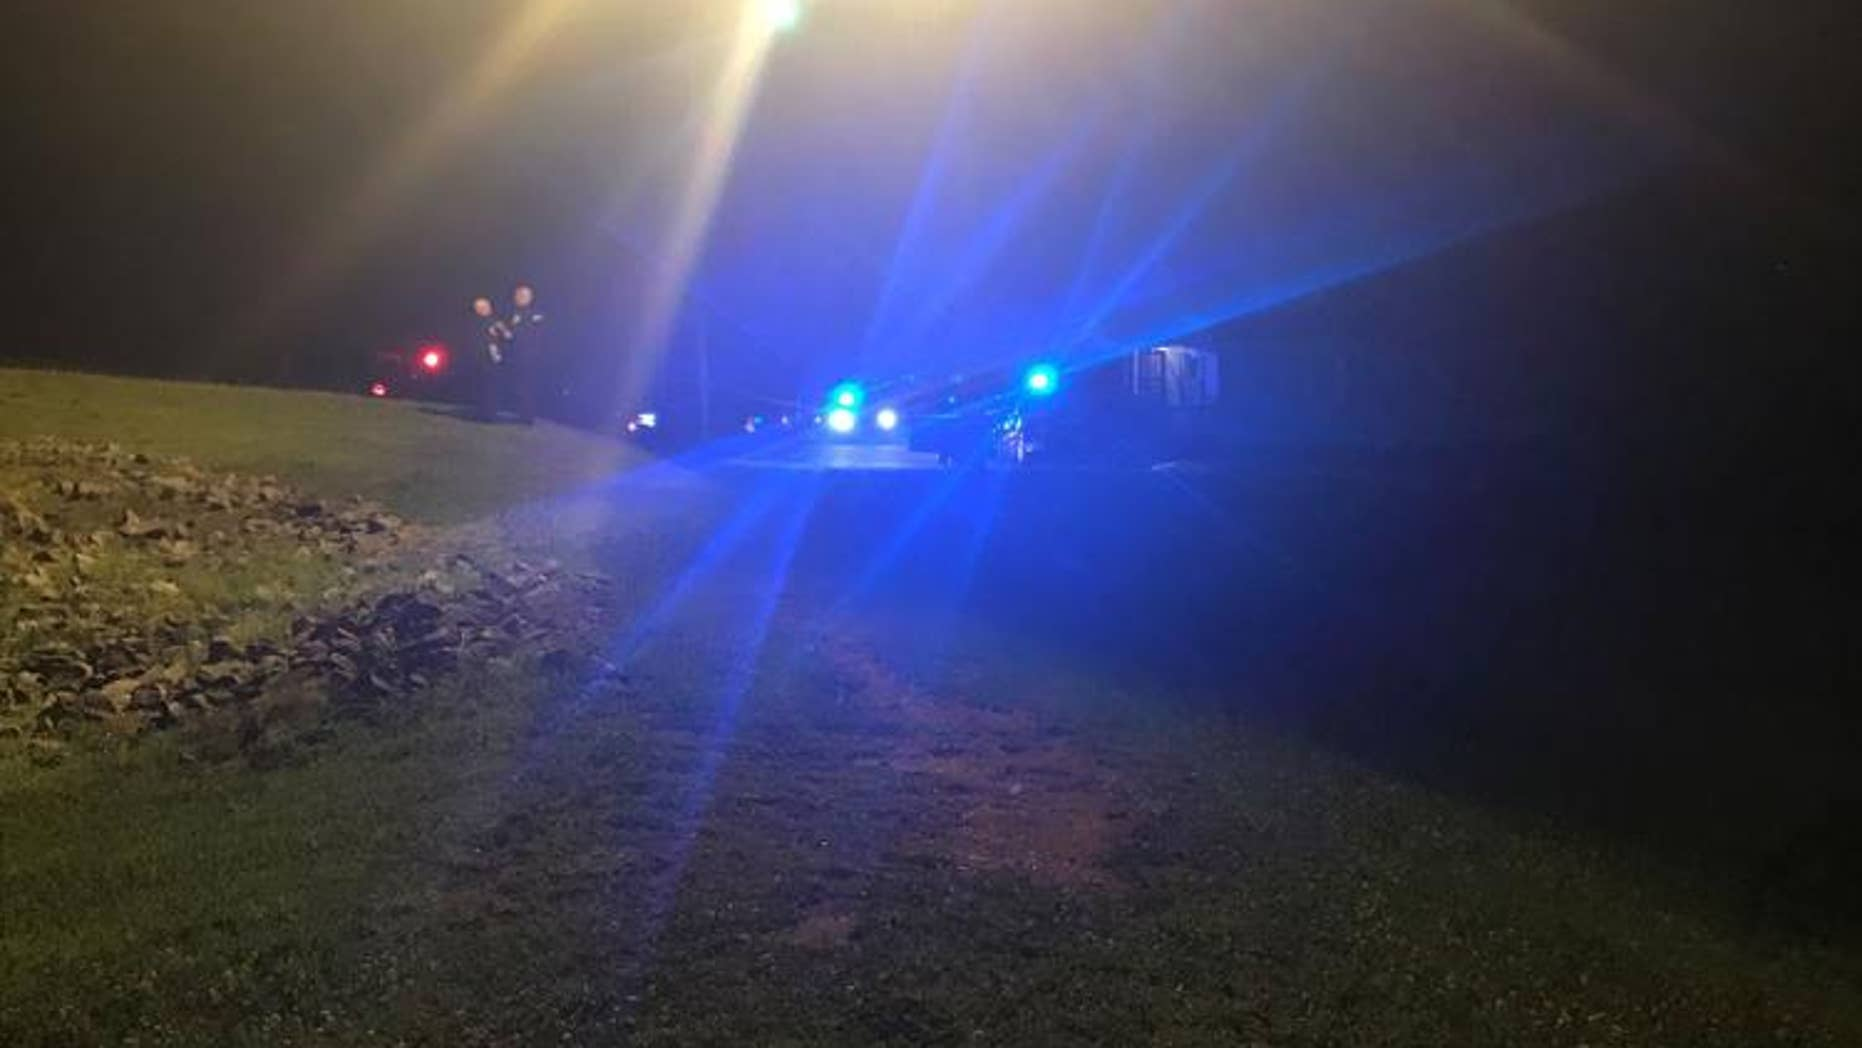 Authorities in Greenville, S.C., responded to a deadly shooting early Sunday.